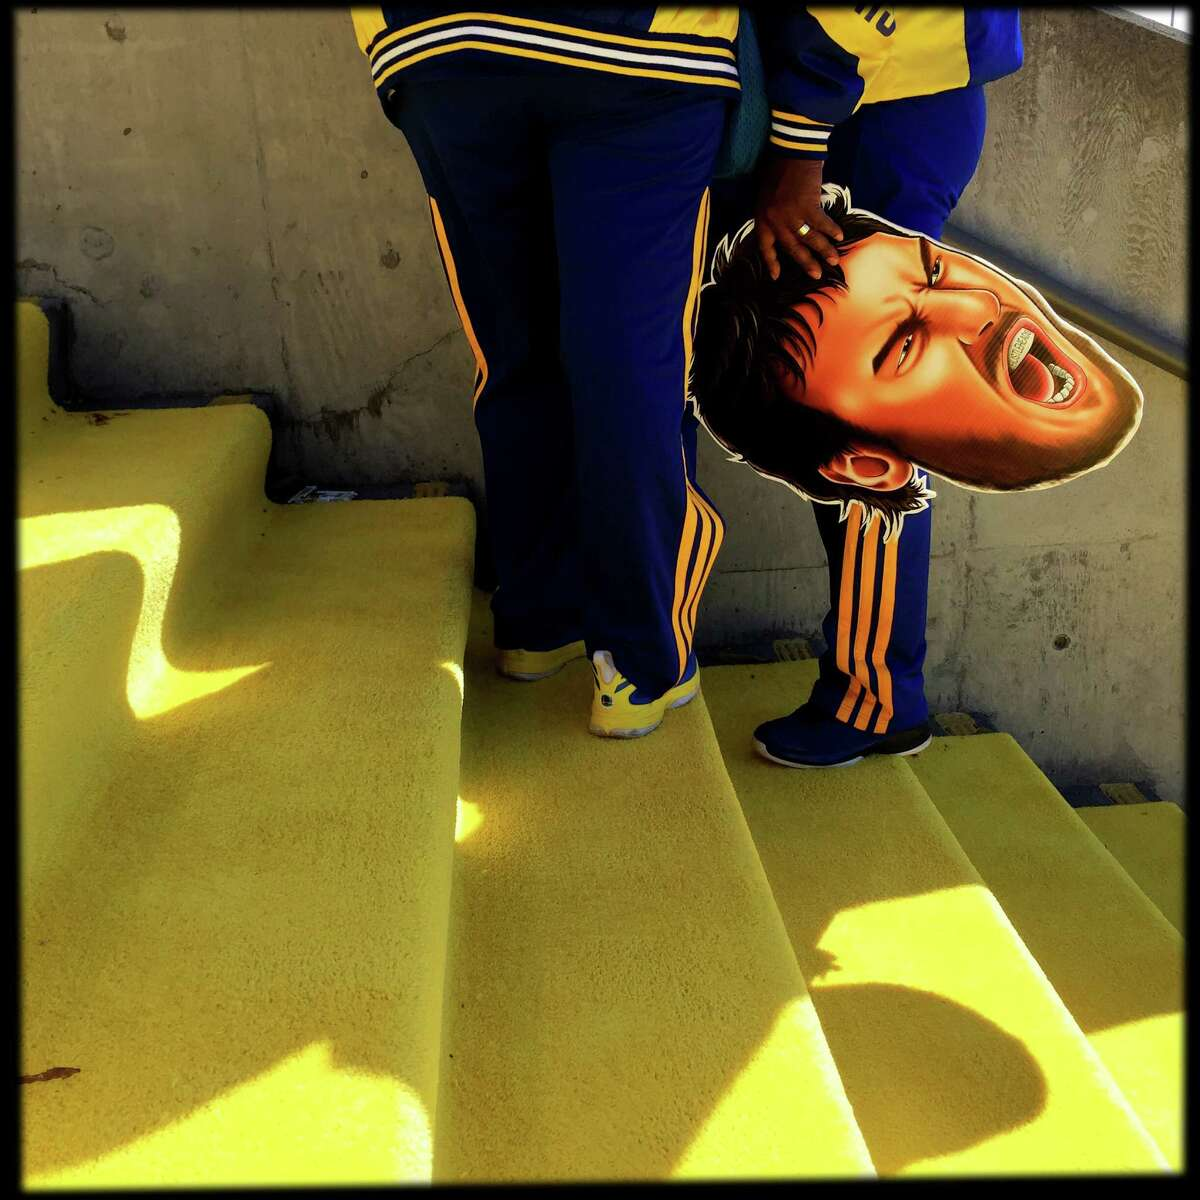 NBA Finals' iPhone photos at Oracle Arena in Oakland, Calif..